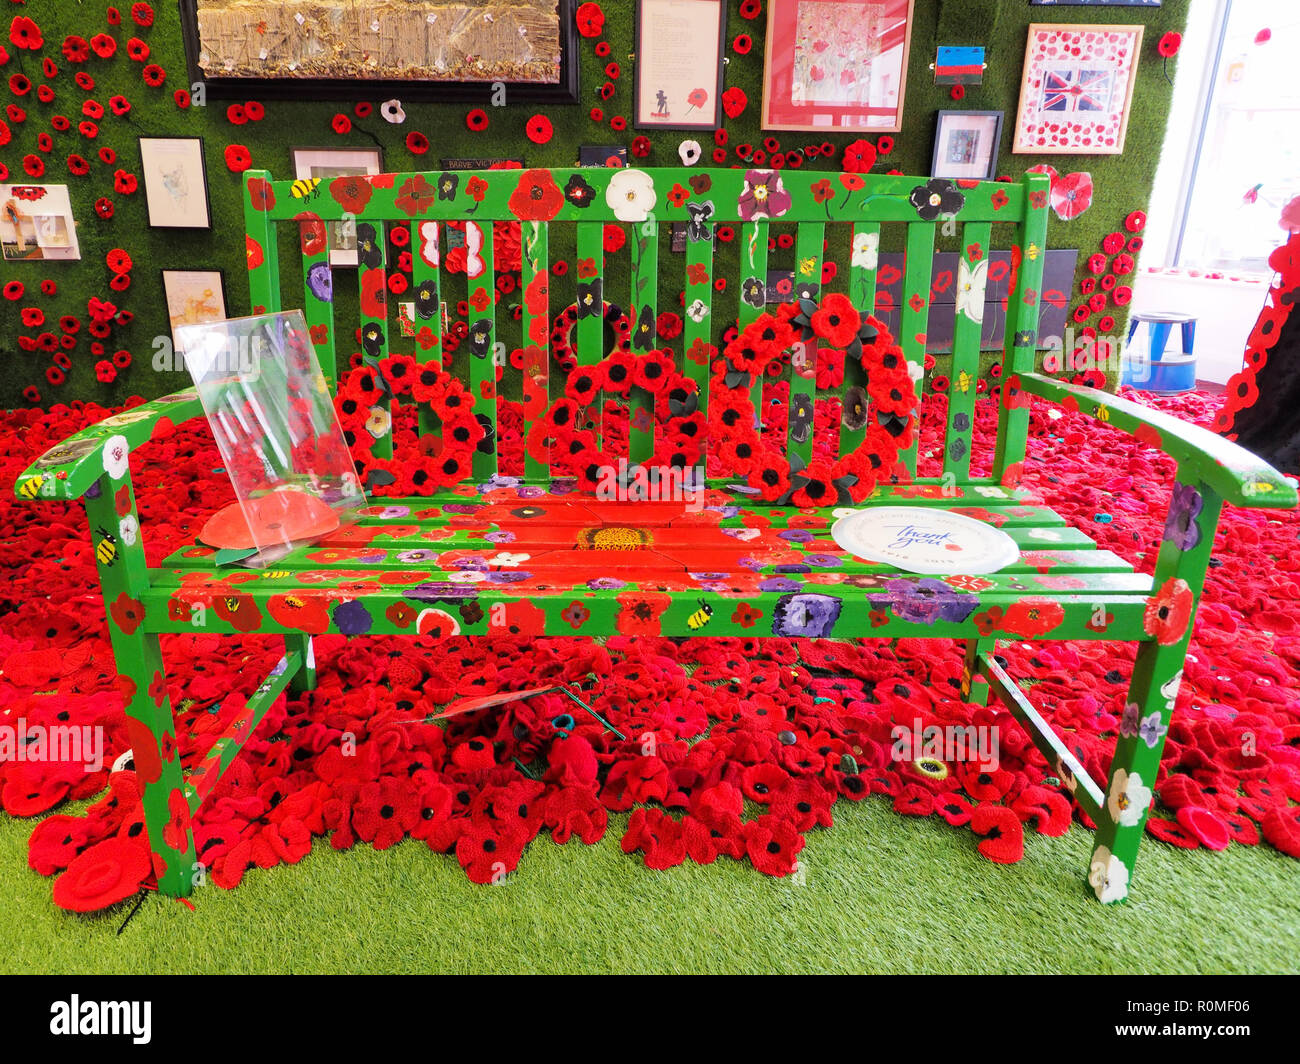 Sheerness, Kent, UK. 6th Nov, 2018. Thousands of knitted poppies are